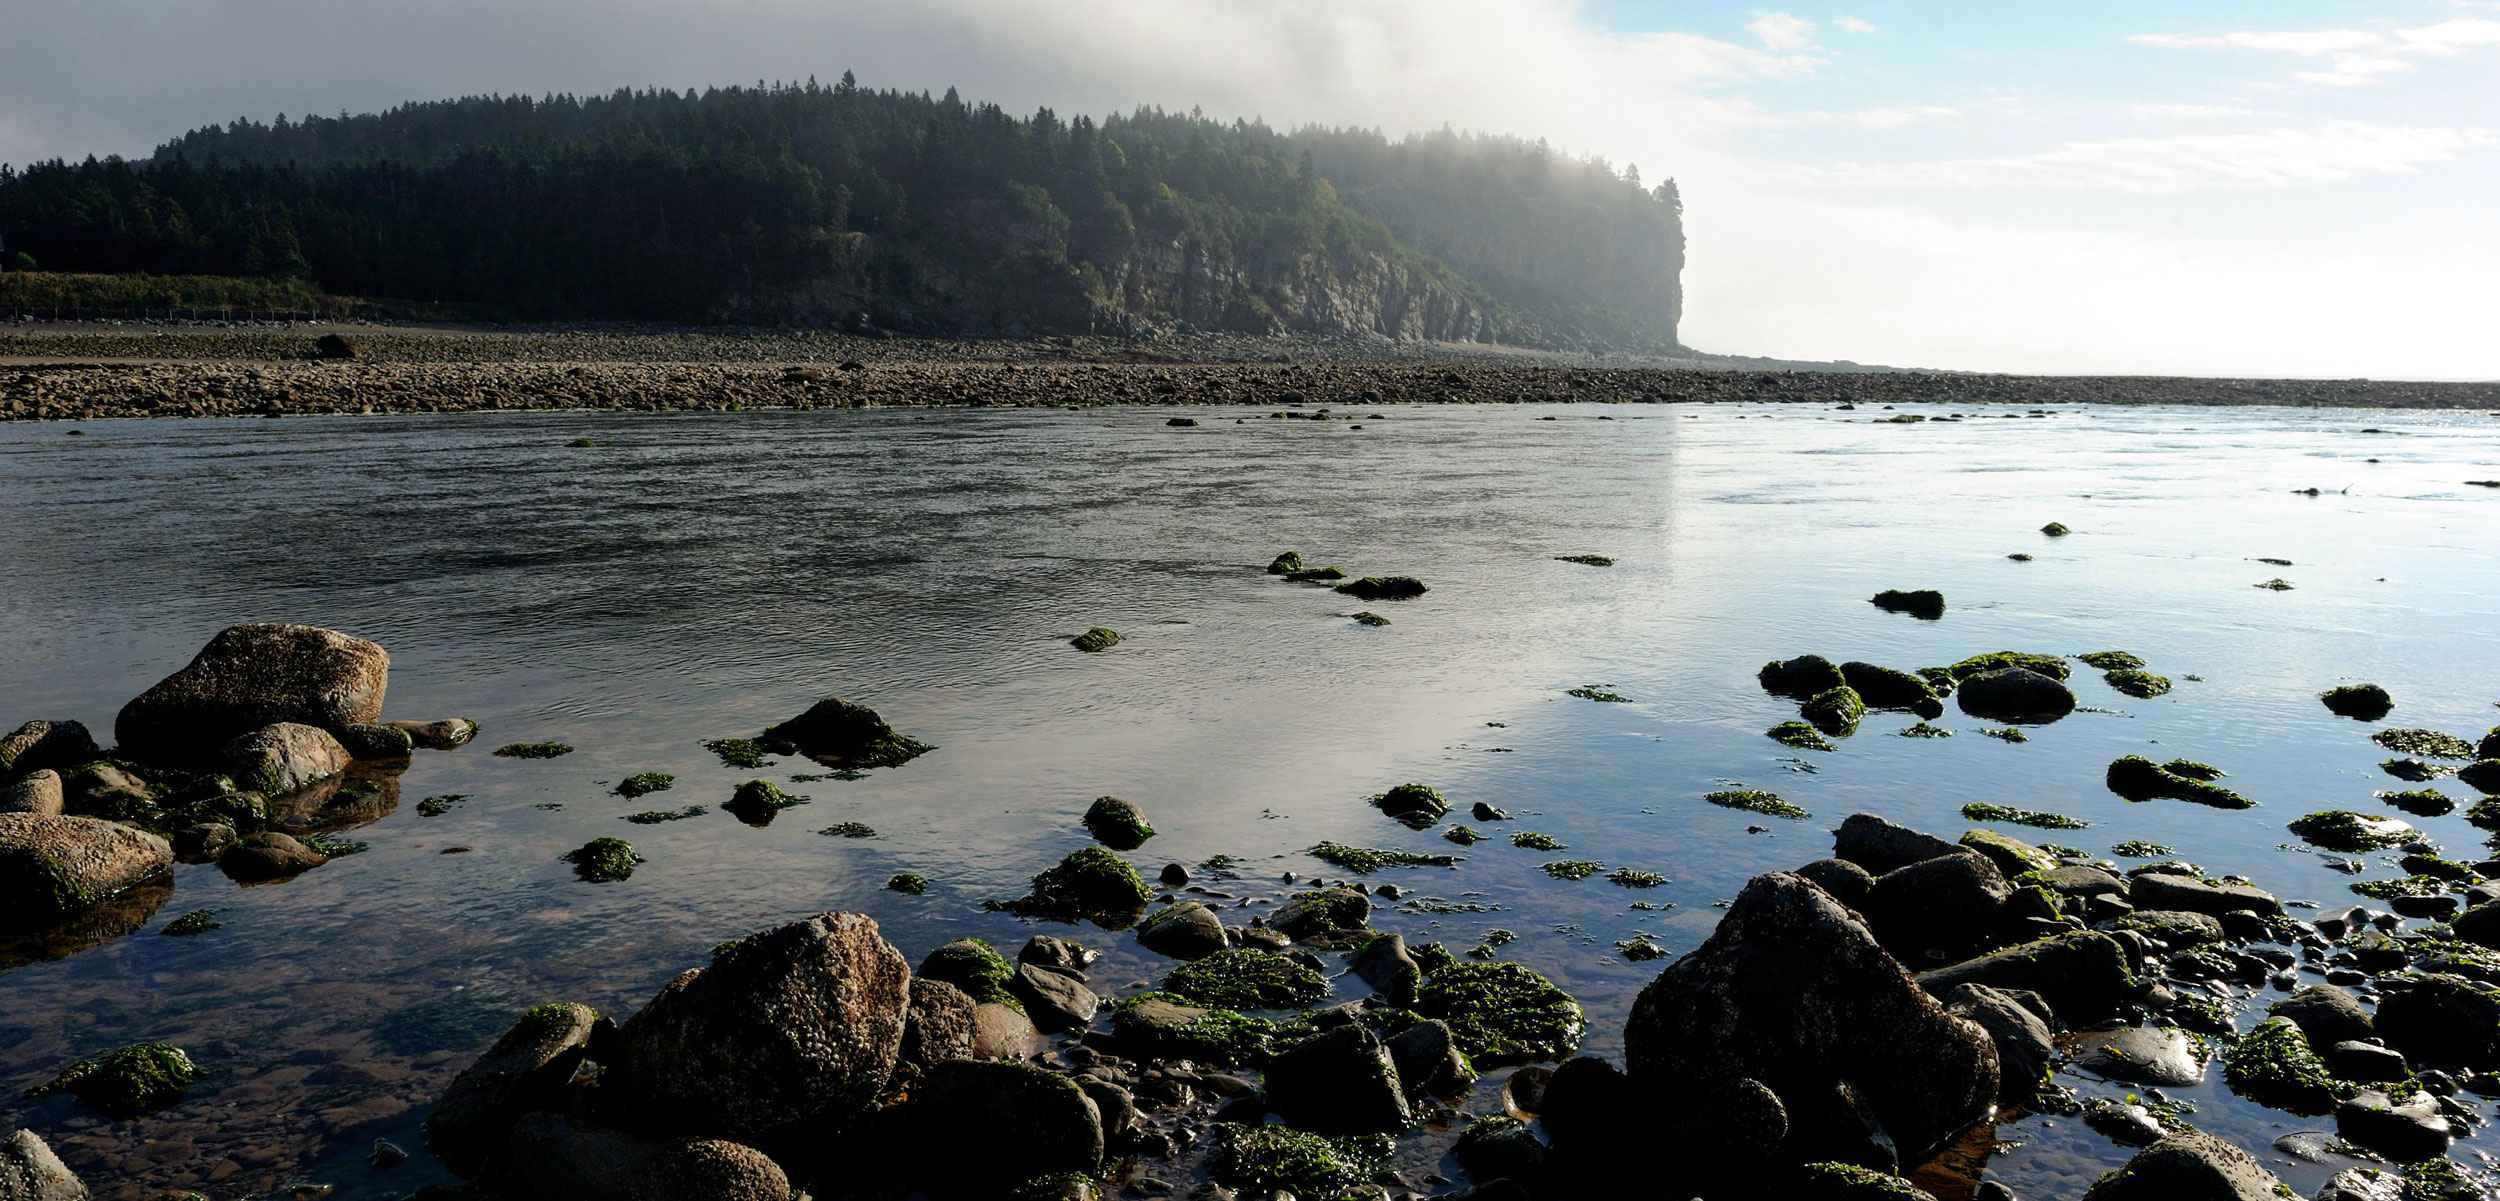 Upper Salmon river at outgoing tide and sunrise, Bay of Fundy